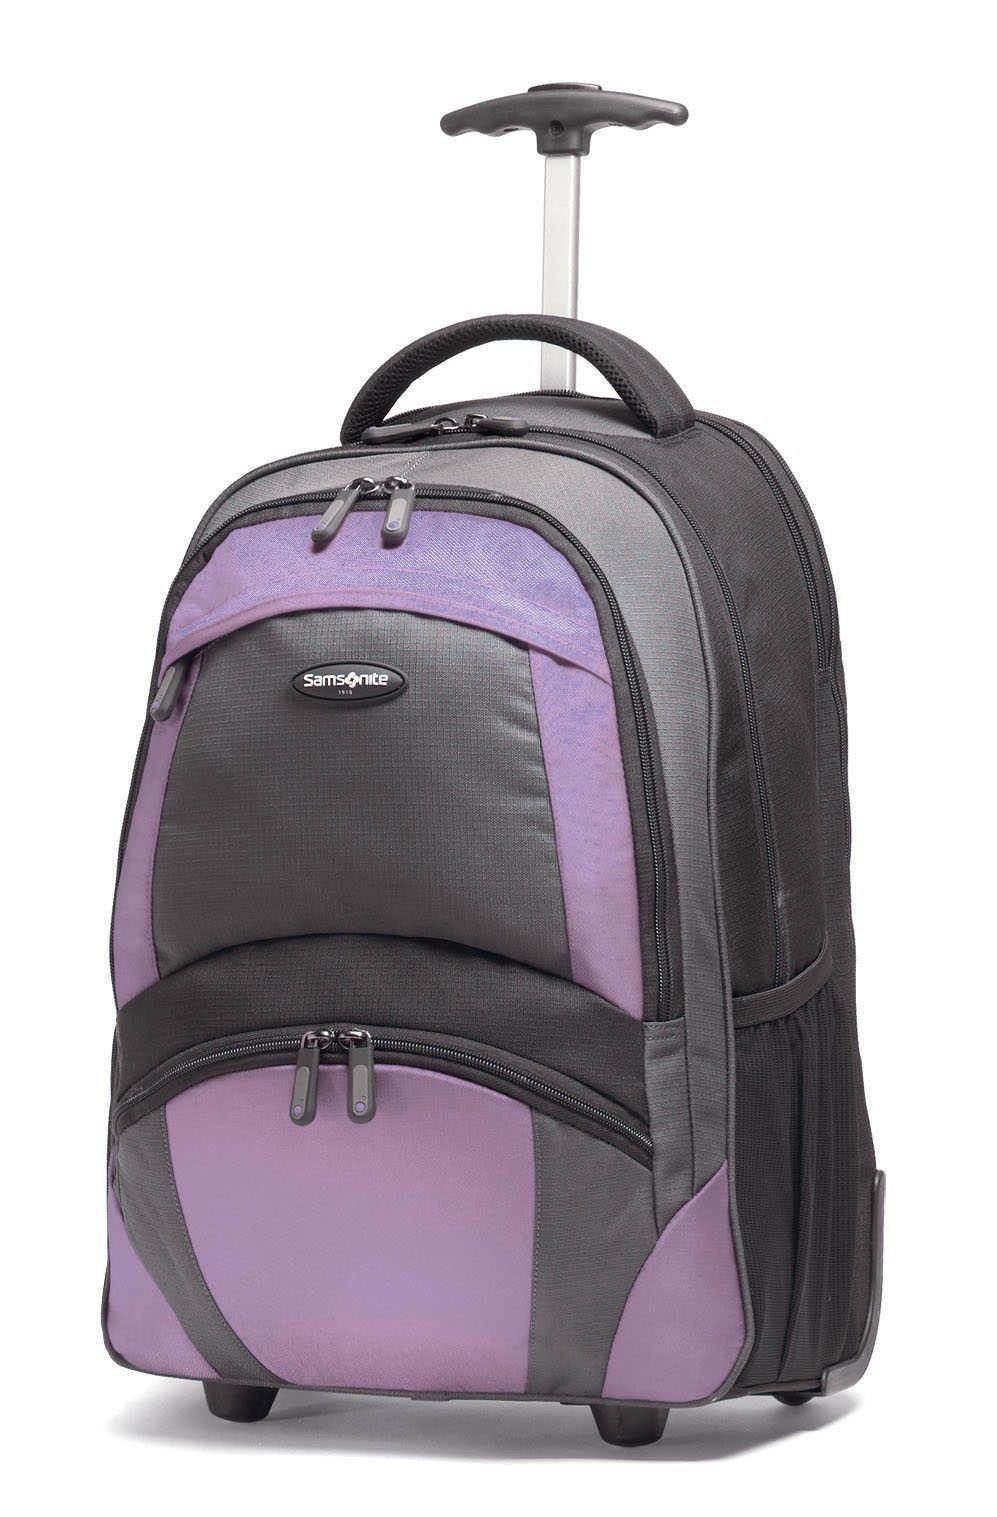 Samsonite Wheeled Backpacks 19